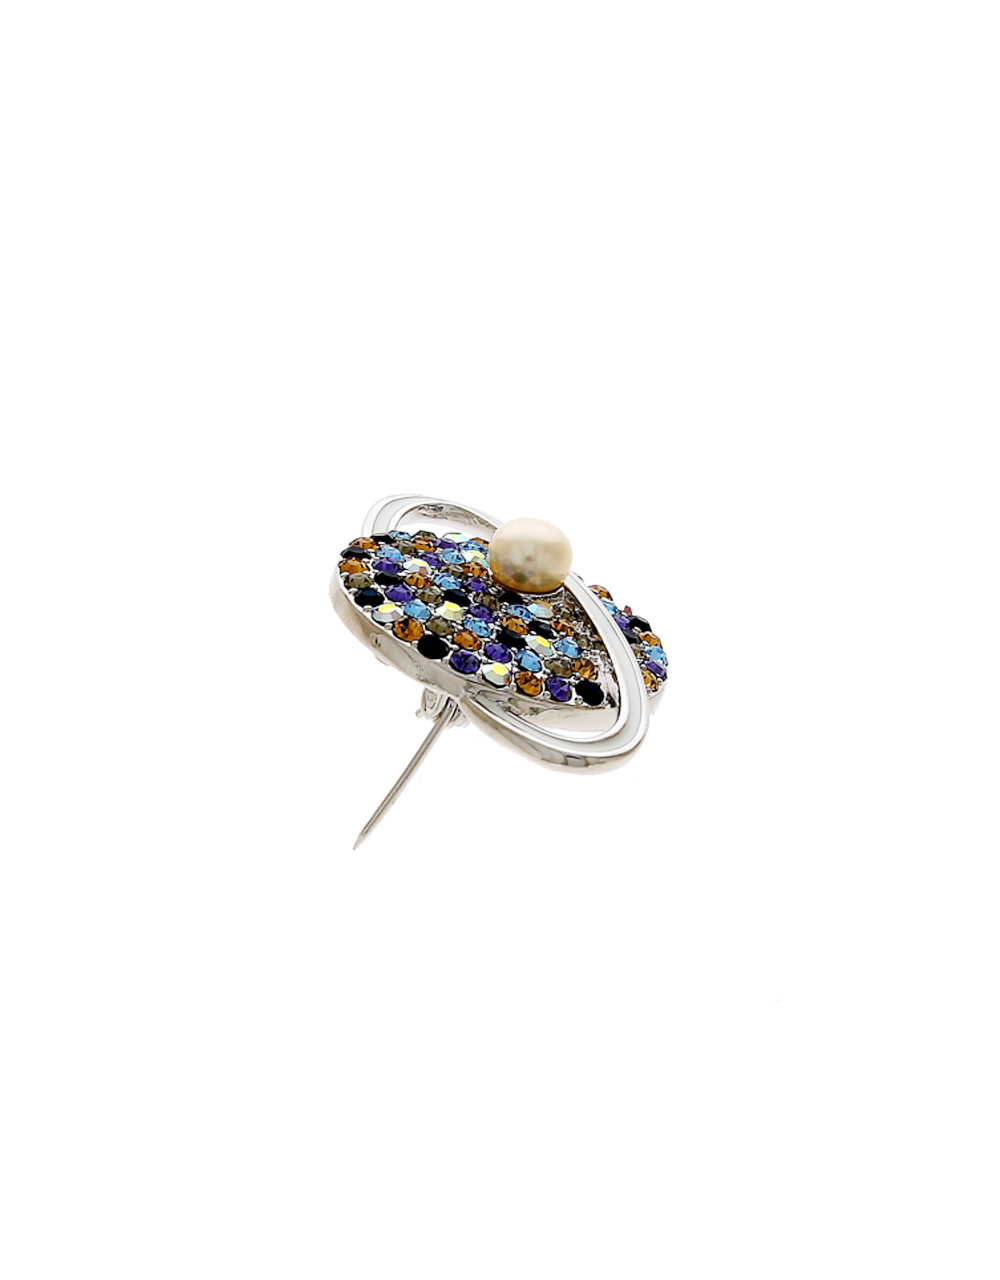 Silver Finish Earth Styled Brooch